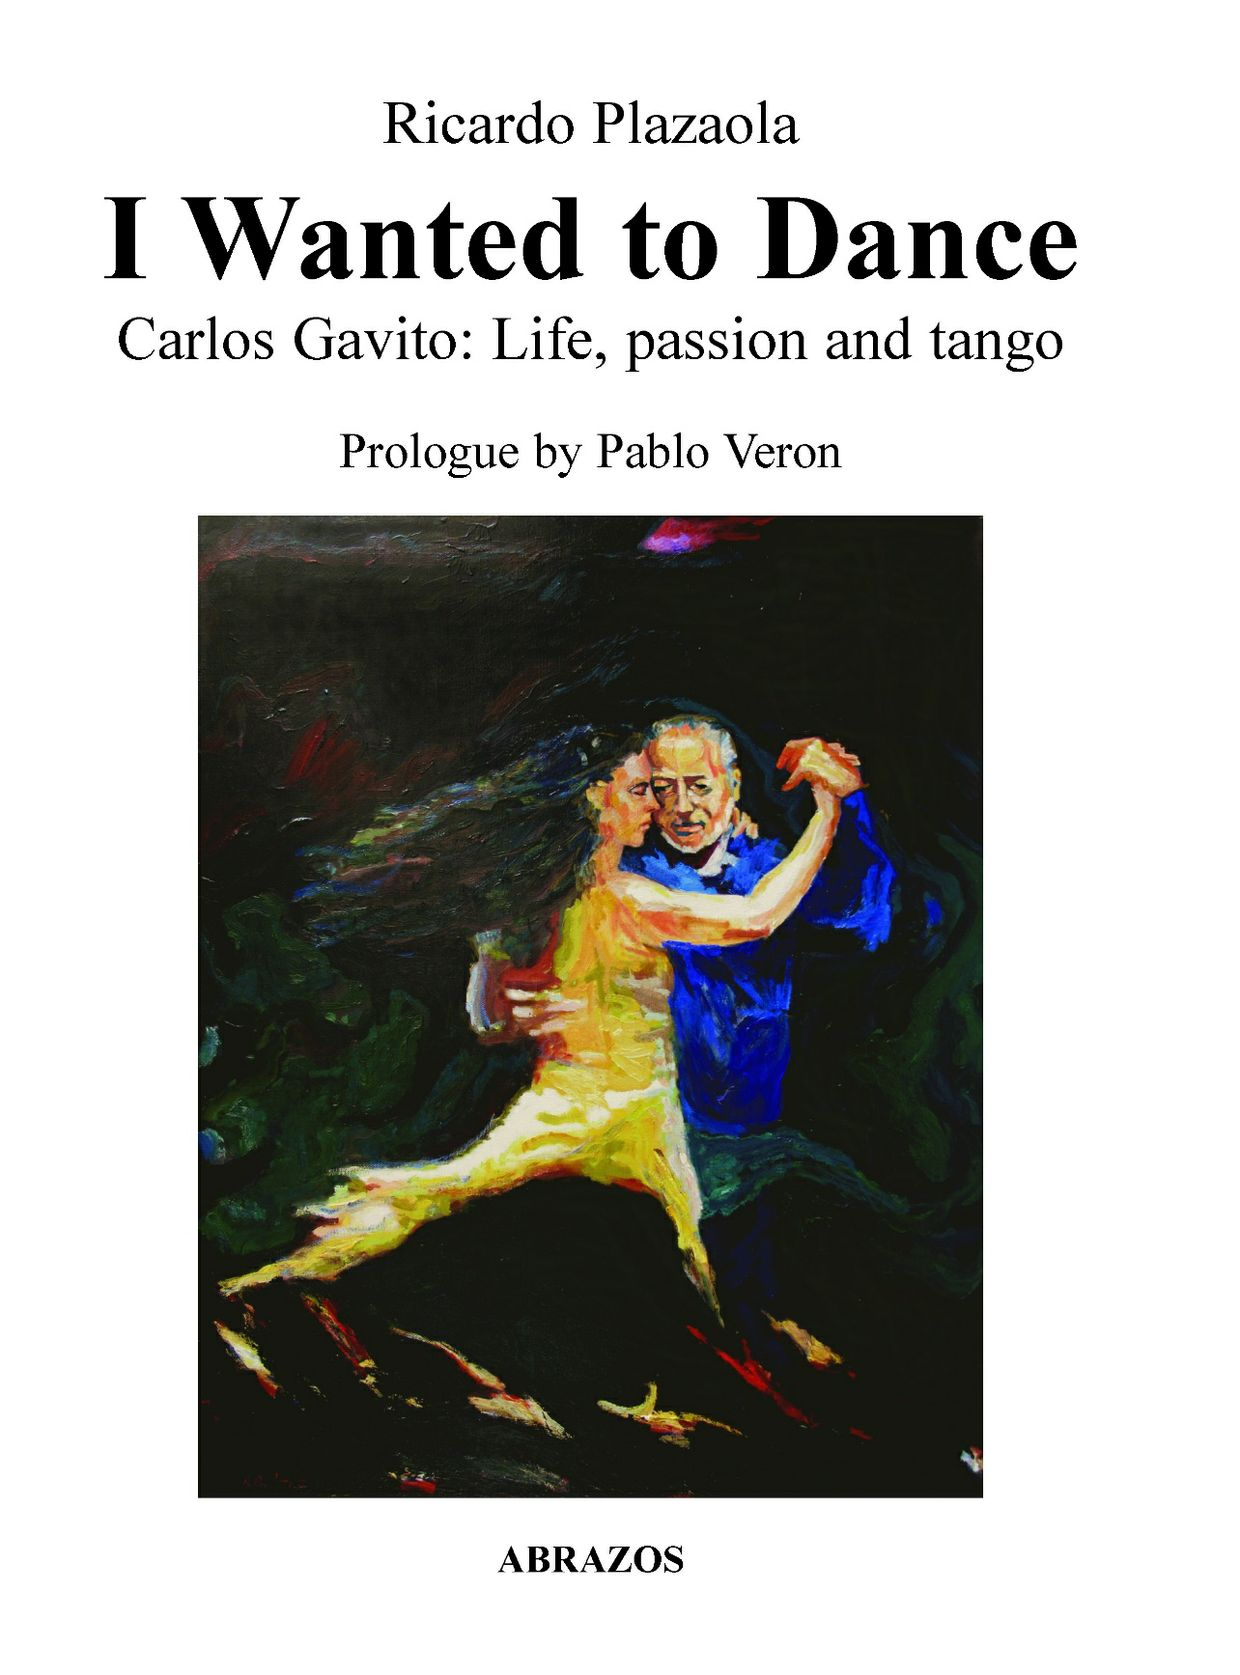 I wanted to dance Carlos Gavito PDF